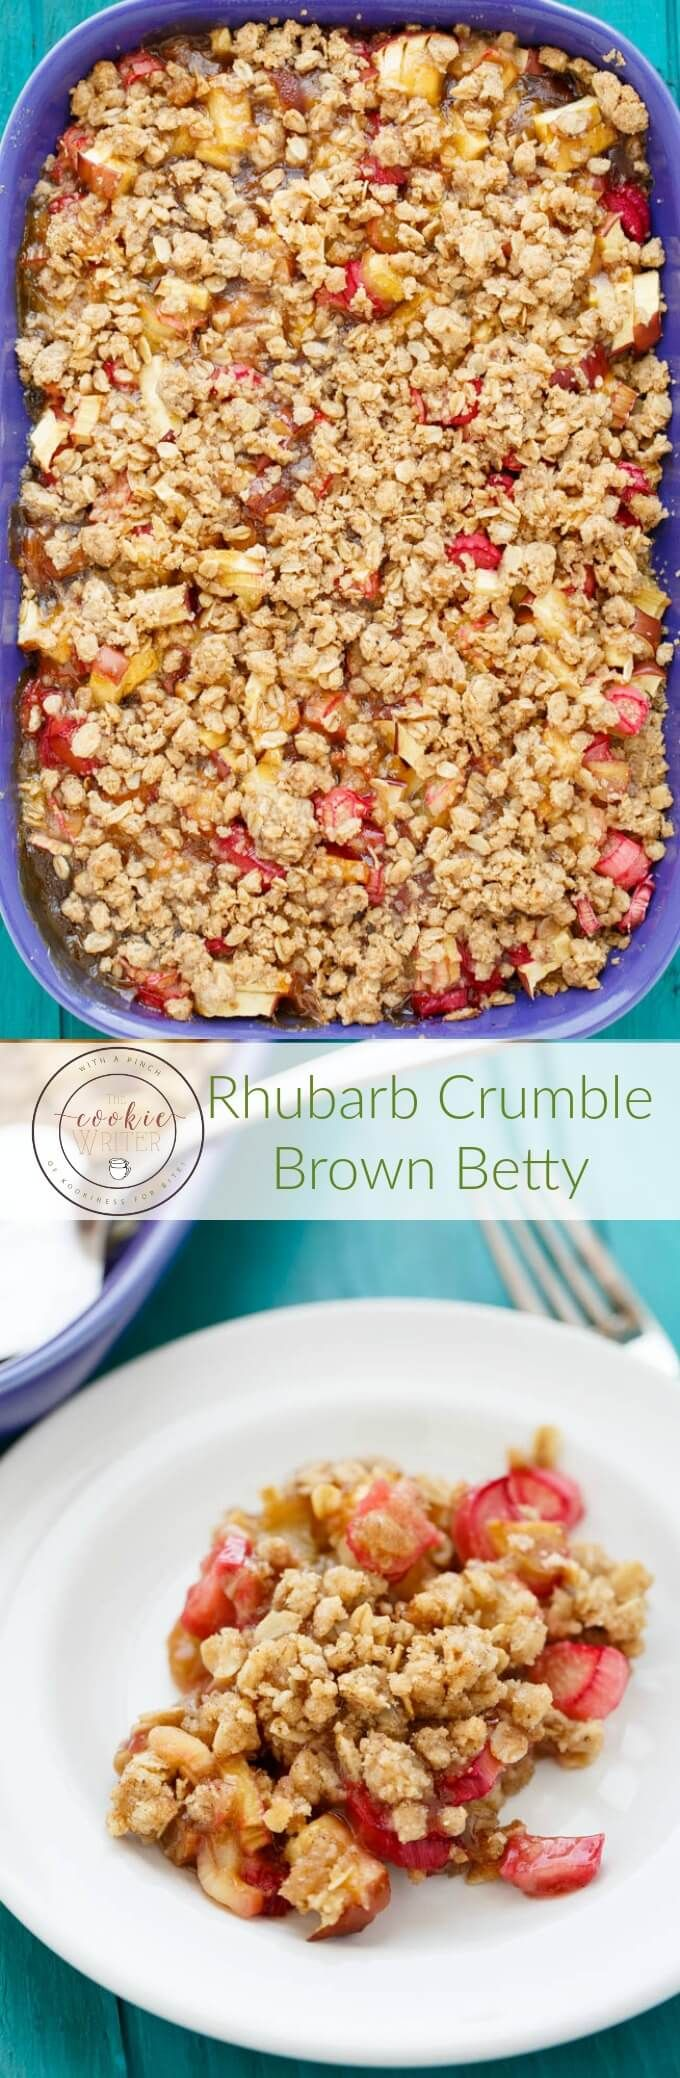 Rhubarb Crumble Brown Betty | http://thecookiewriter.com | @thecookiewriter | #dessert